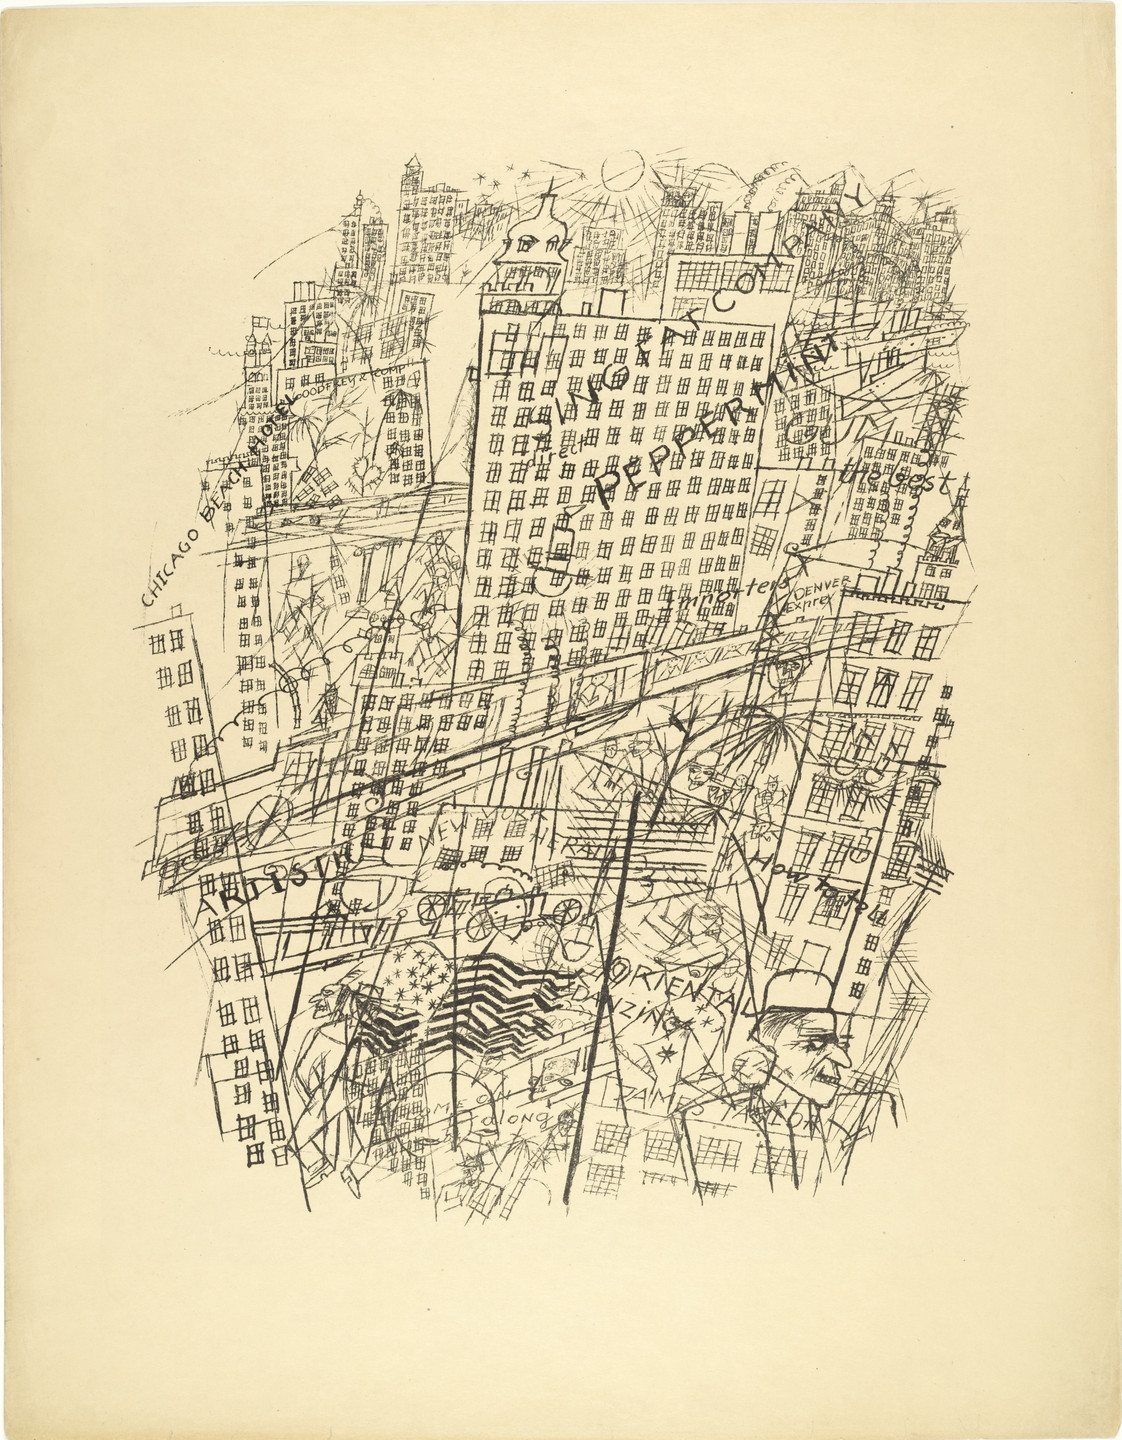 George Grosz. Memory of New York (Erinnerung an New York) from The First George Grosz Portfolio (Erste George Grosz-Mappe). (1915-16, published 1916-17)